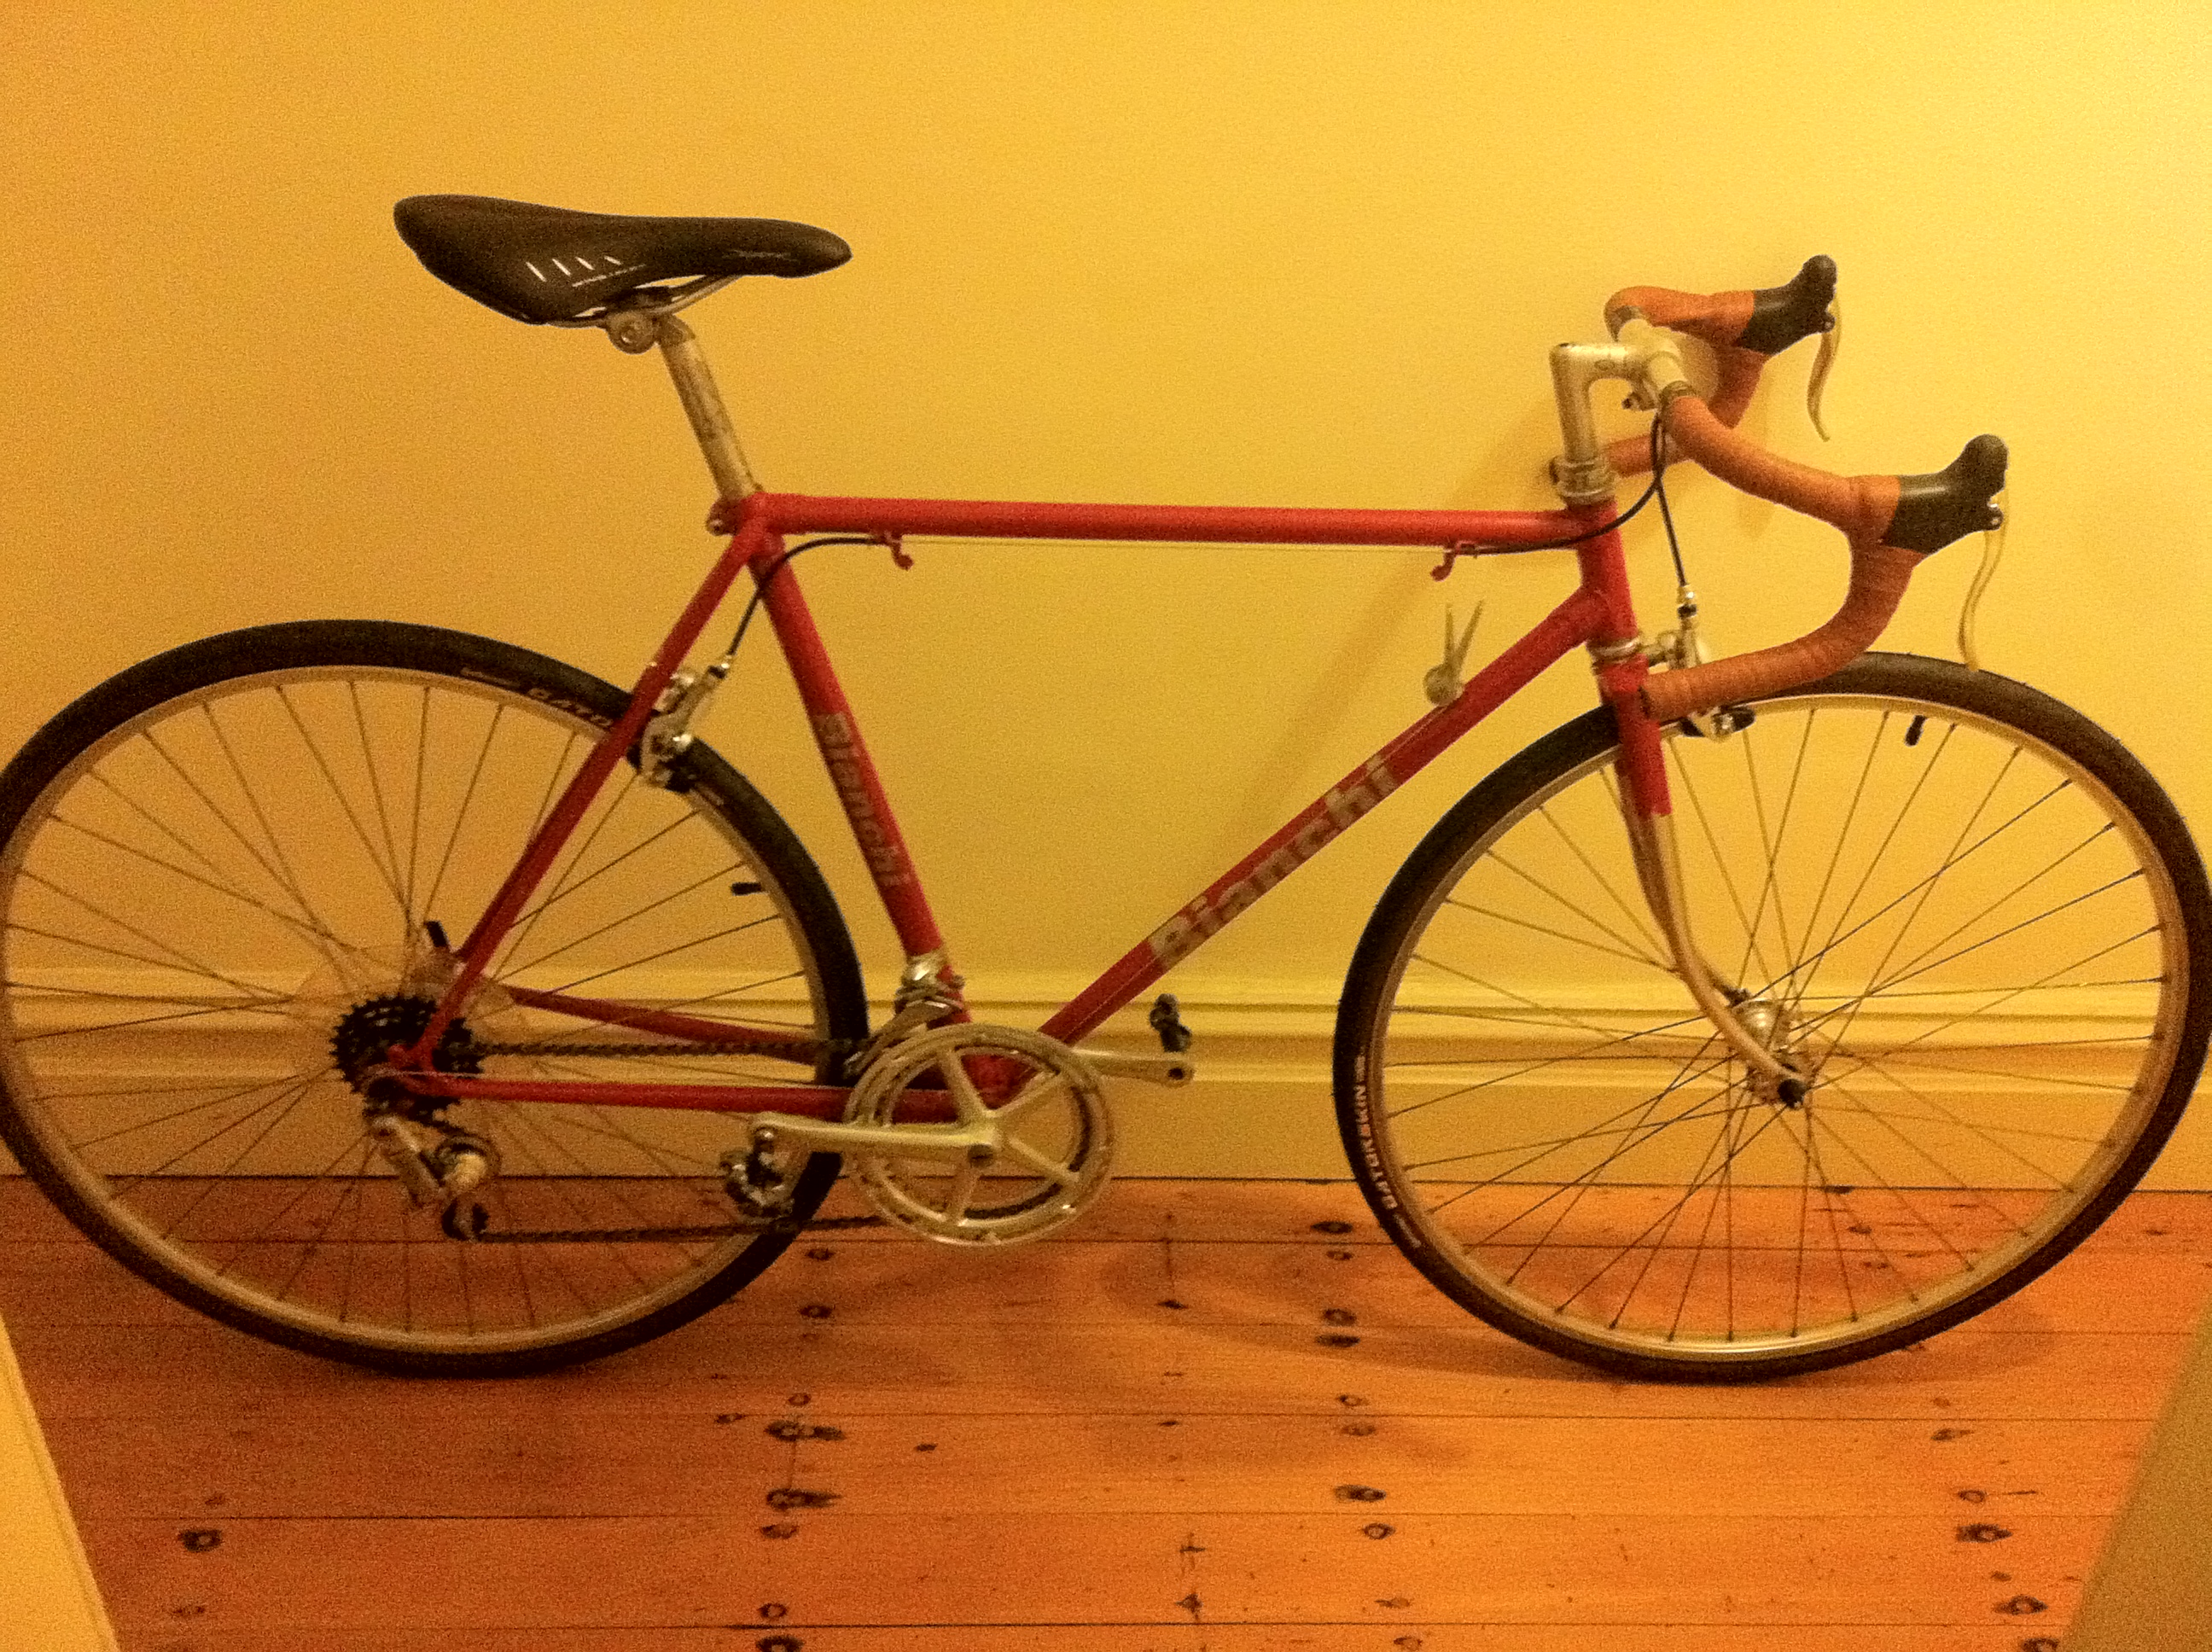 Restoring a Vintage Dumpster Bike: 10 Steps (with Pictures)